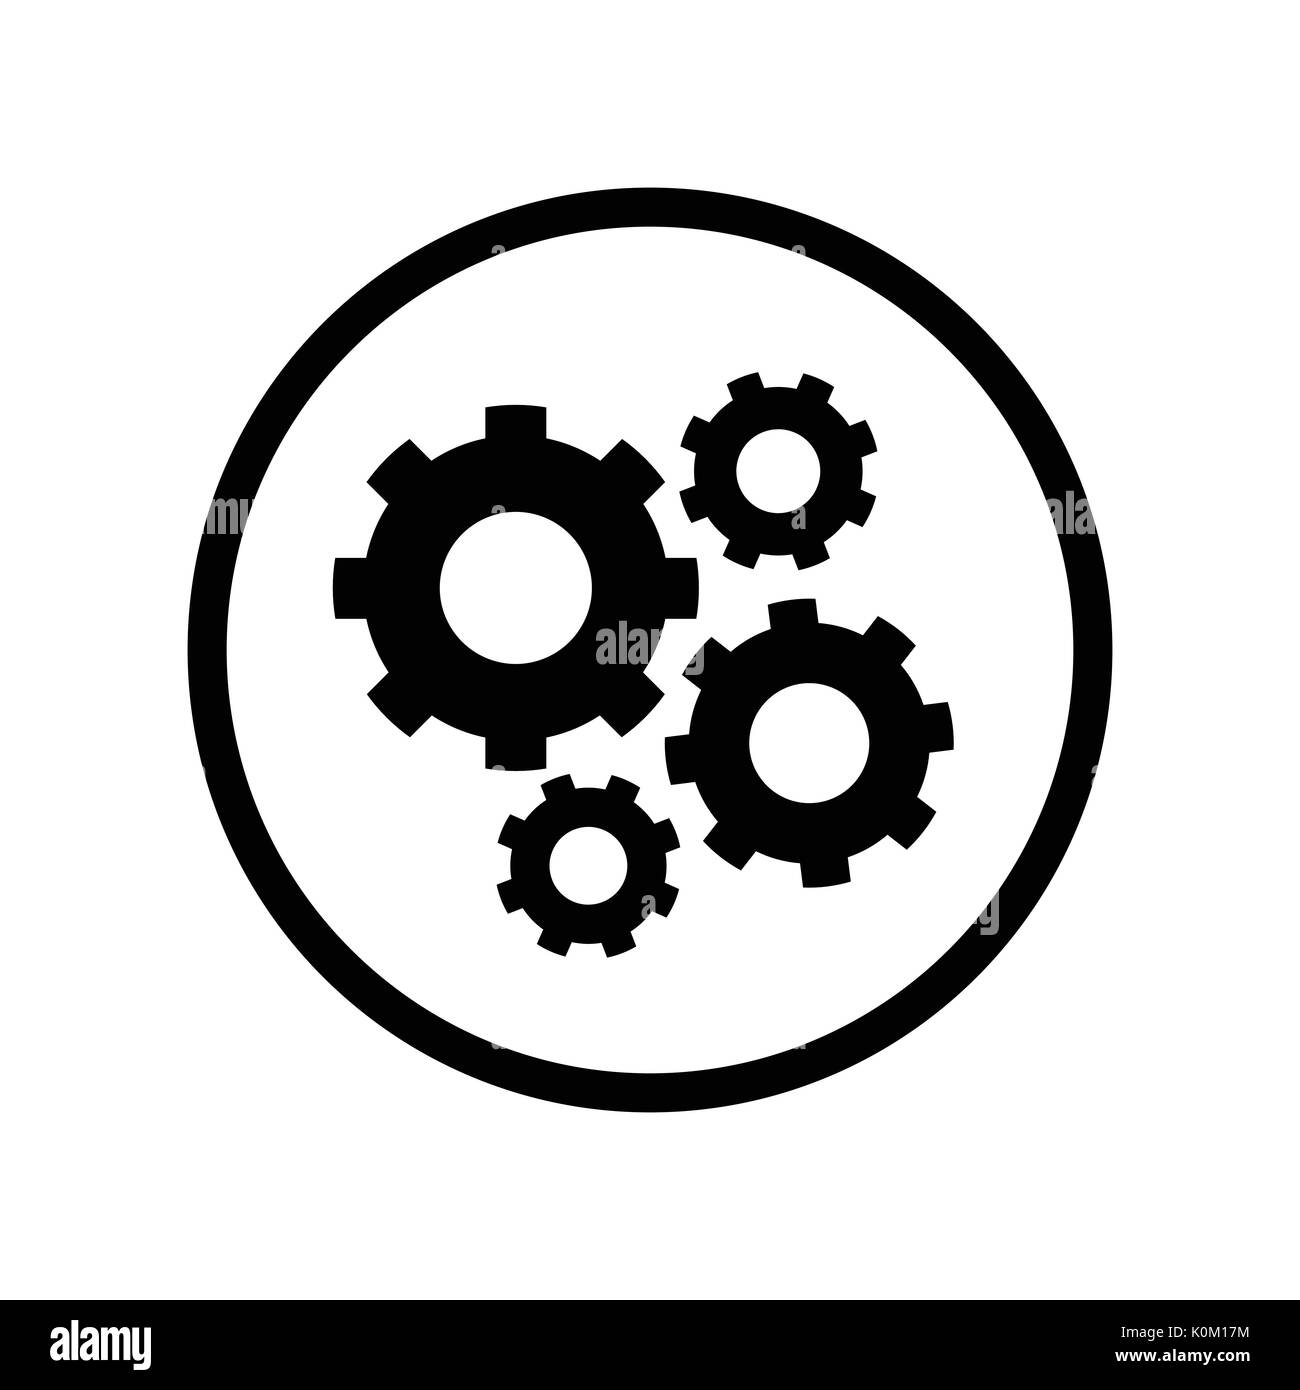 Pictograph of Gears icon in circle, iconic symbol on white background - Vector Iconic Design. - Stock Vector